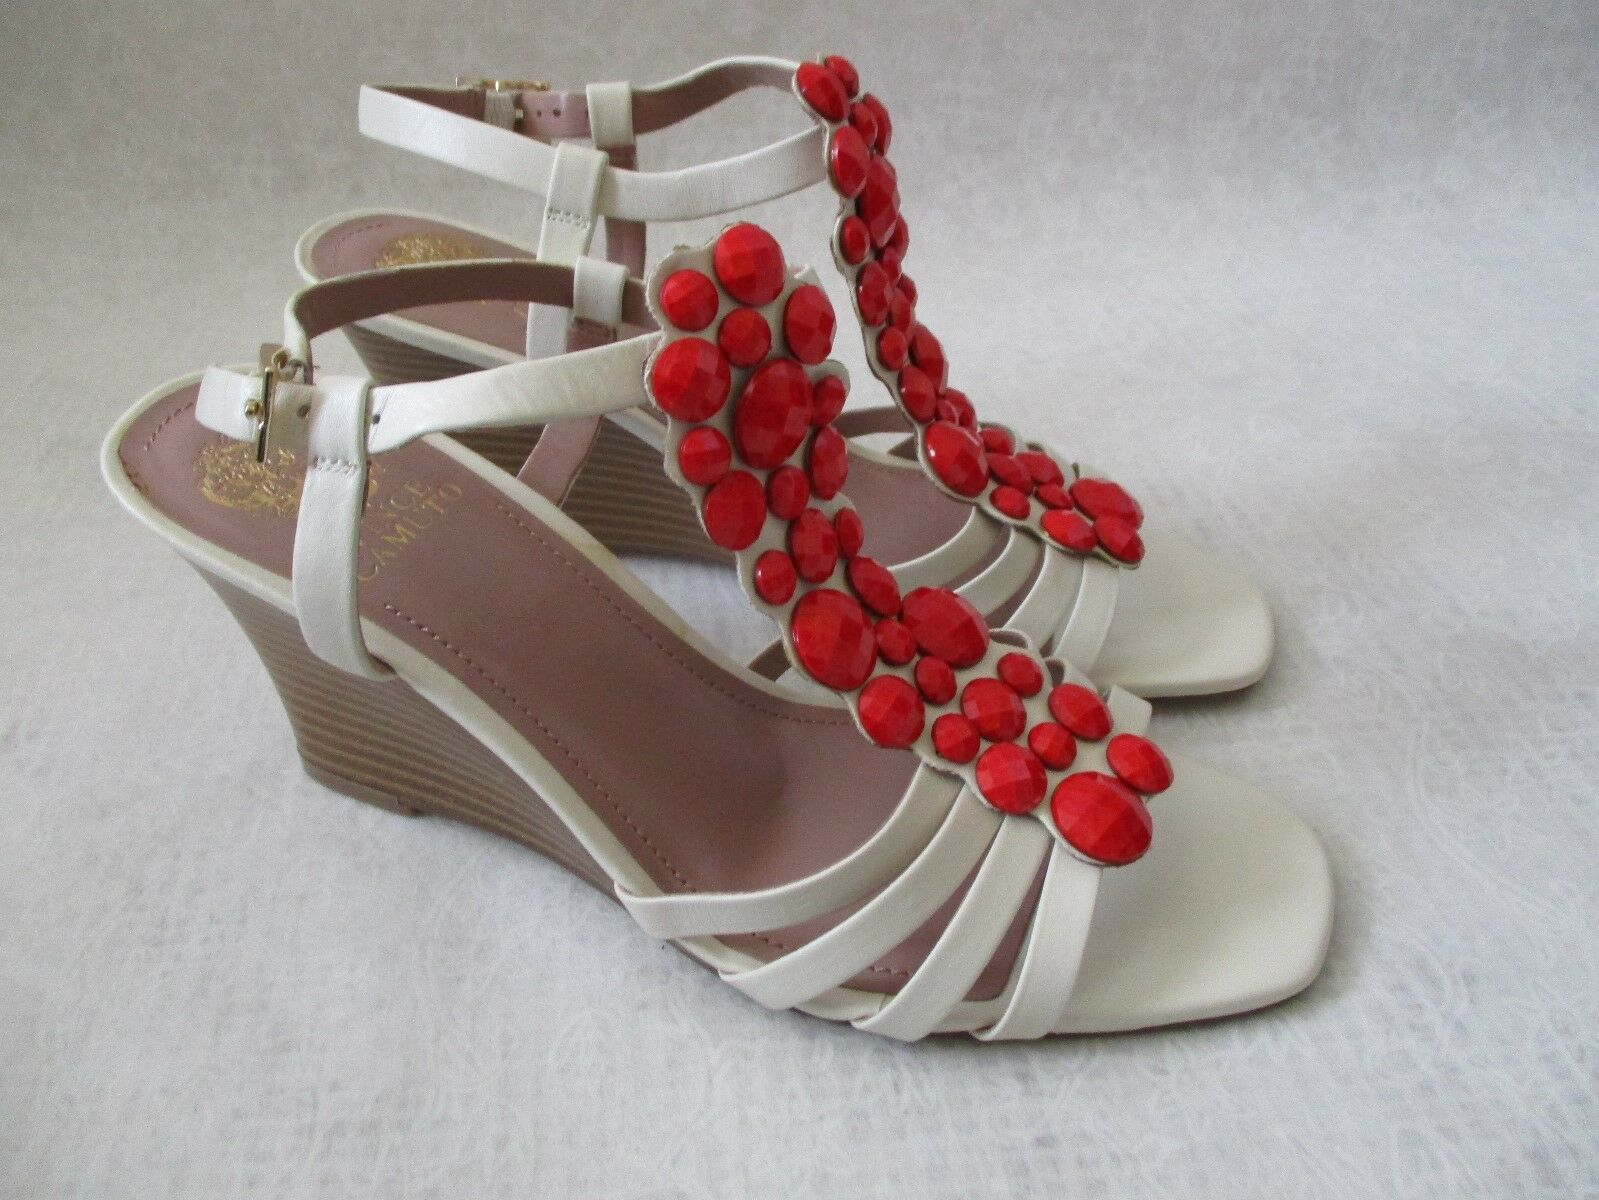 79 VINCE CAMUTO LEATHER WEISS ORLOV/ROT JEWELED WEDGE Schuhe SIZE 91/2 M  - NEU